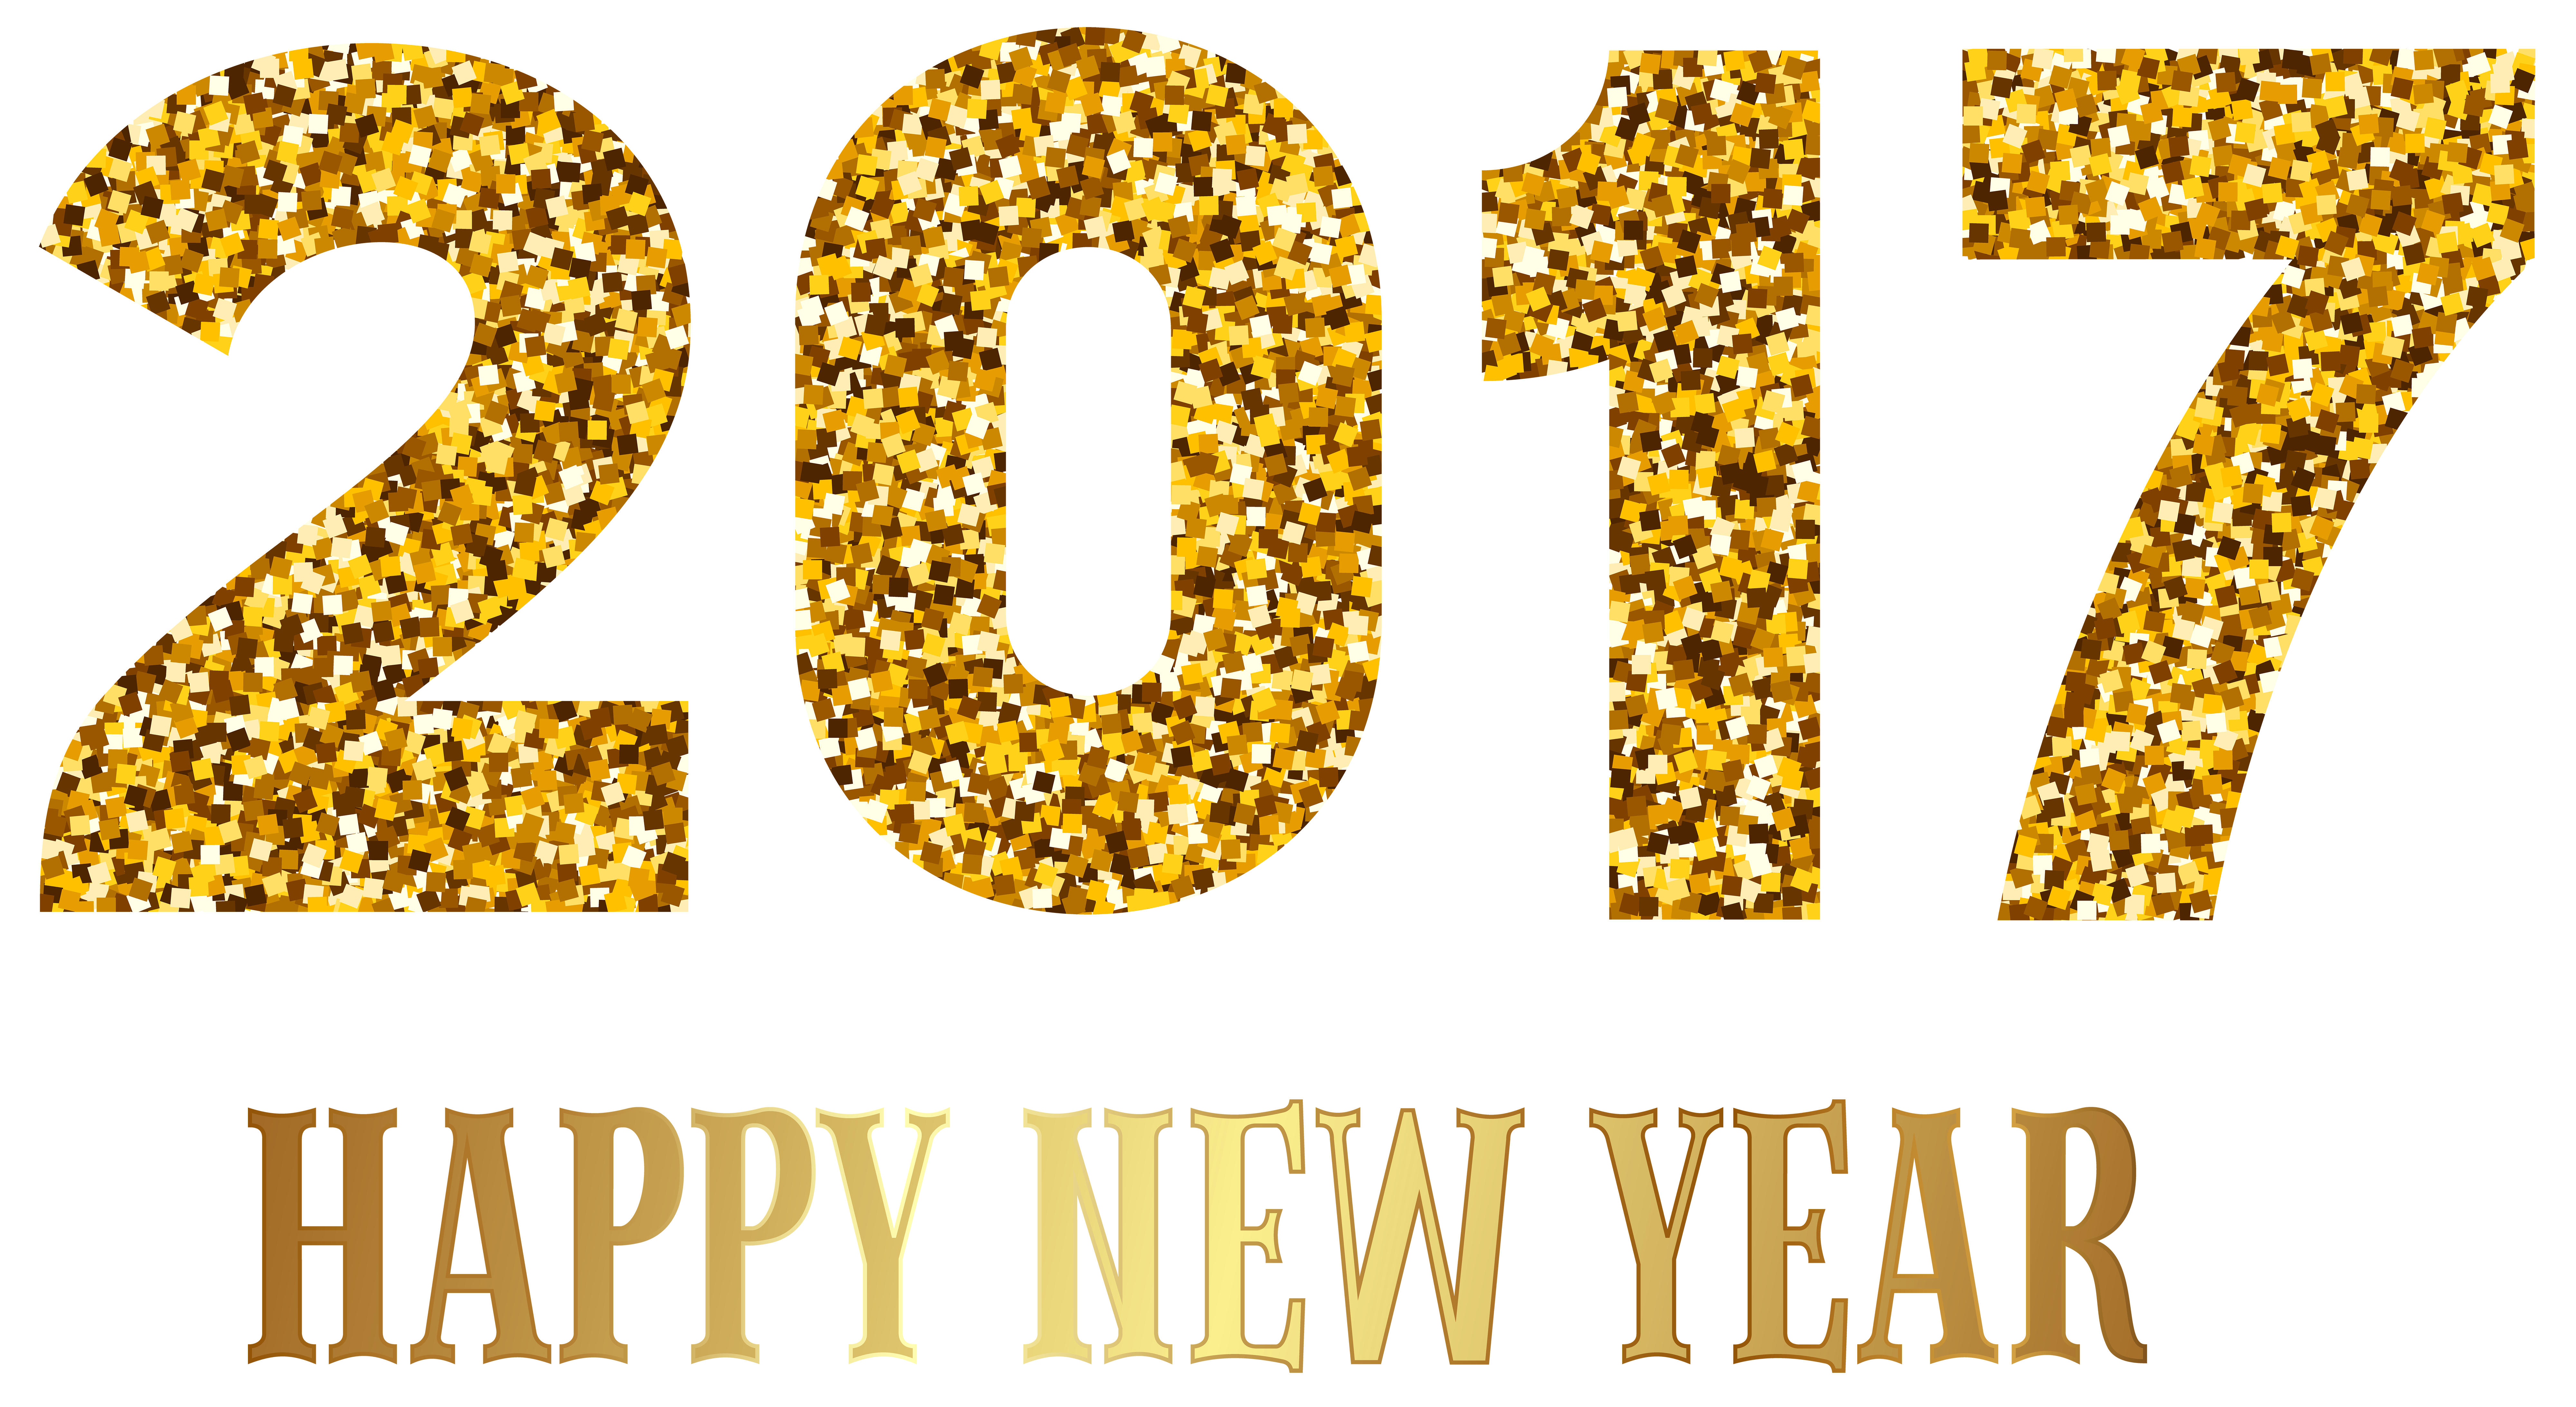 2017 happy new year transparent png image